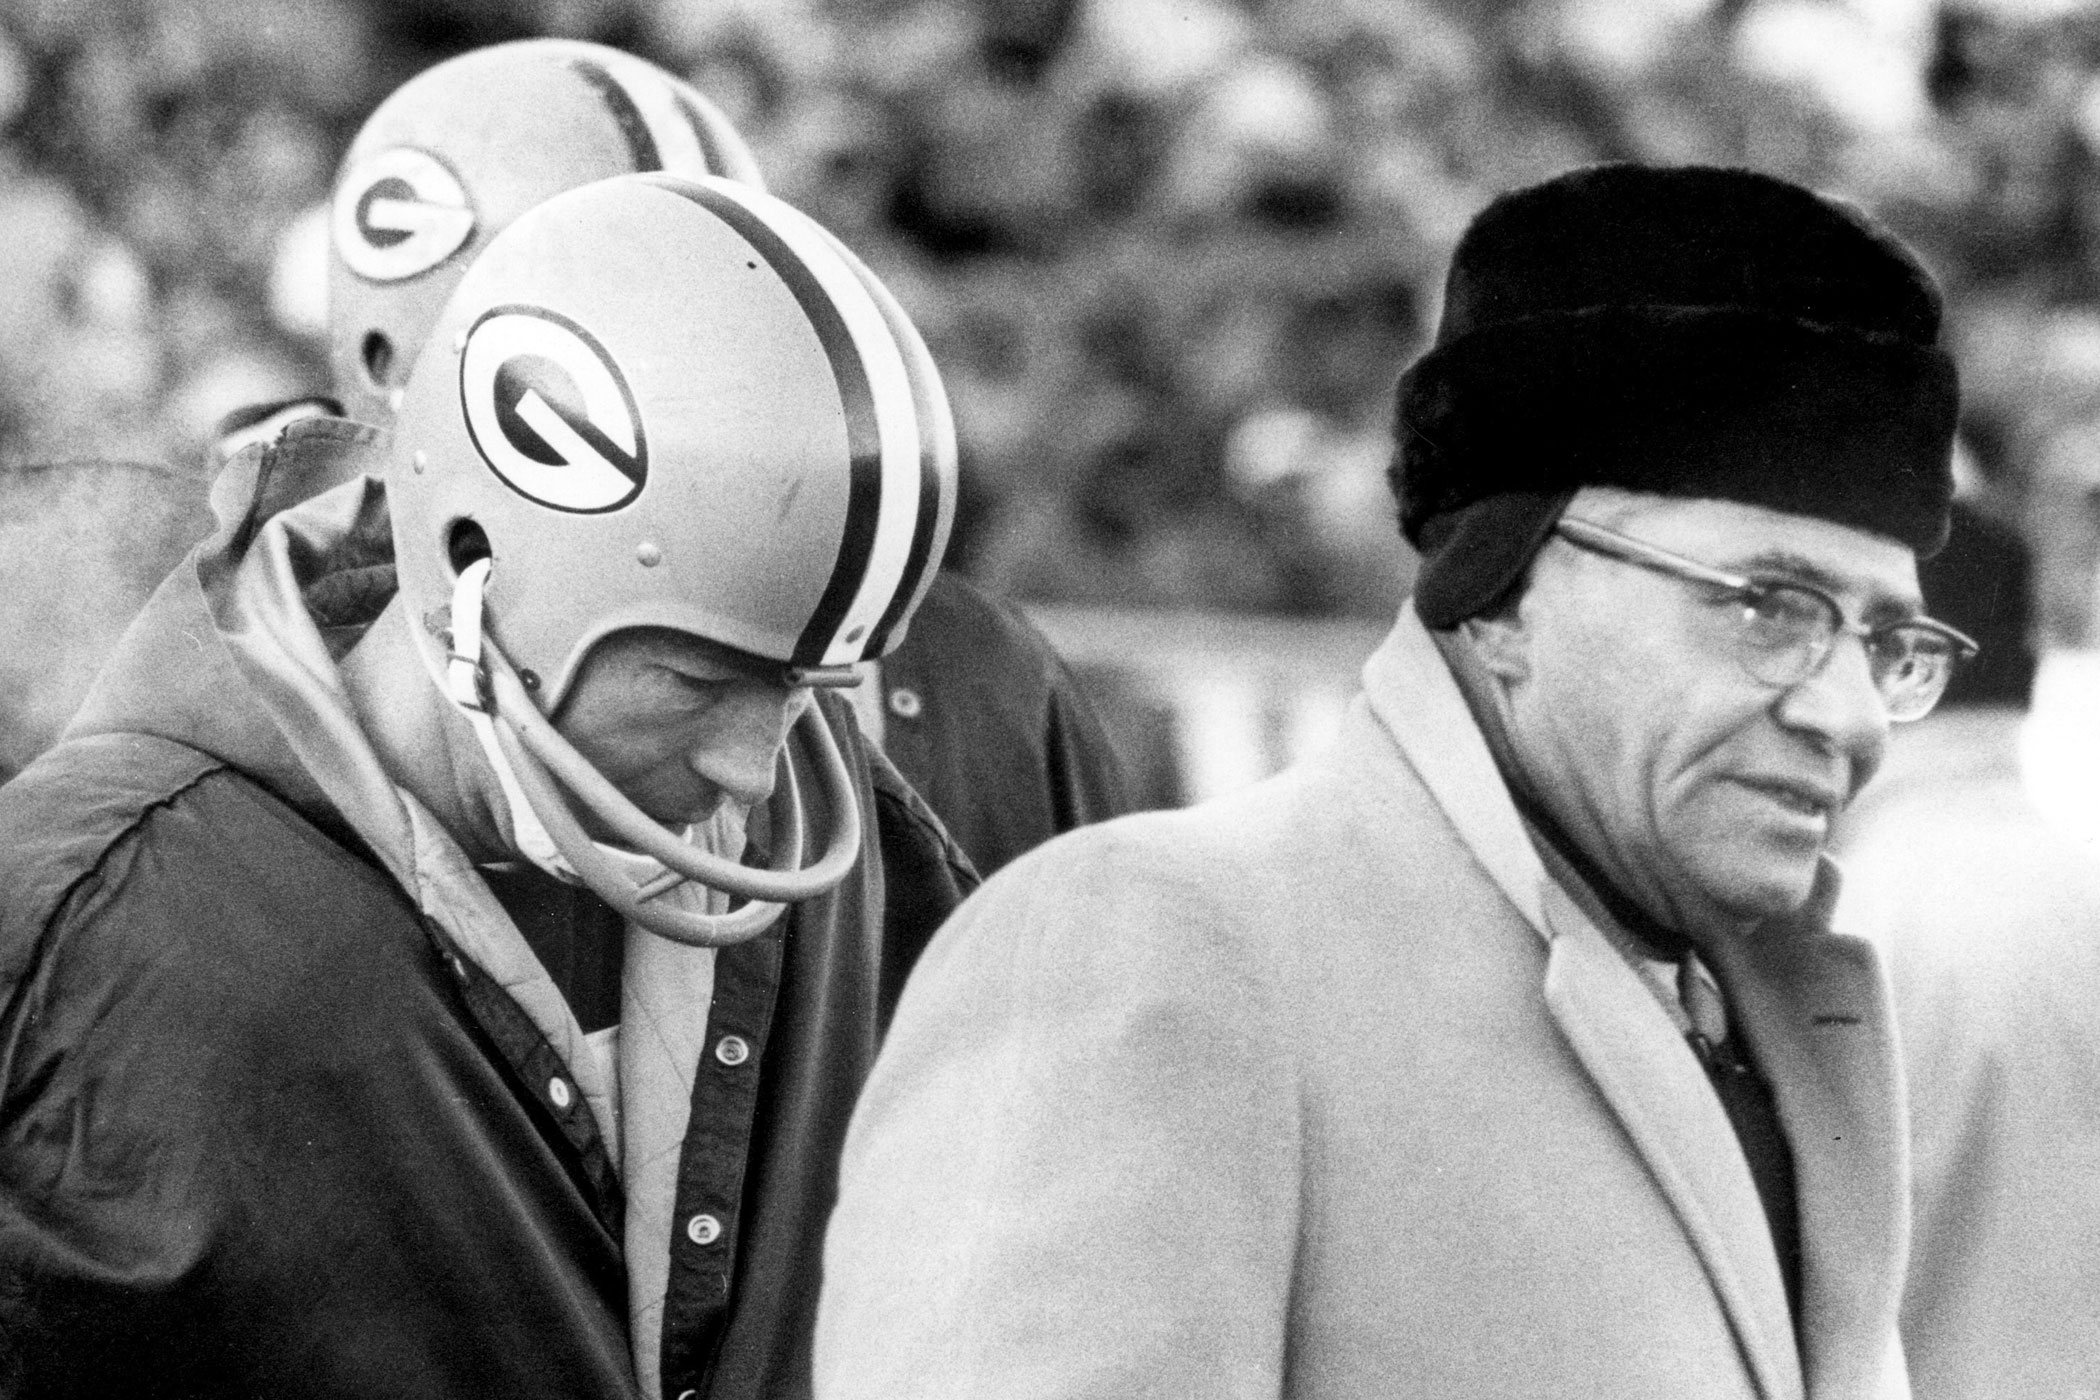 Temperature: -13°F (Wind Chill: - 48°F).                               On Dec. 31, 1967, the Green Bay Packers faced the Dallas Cowboys in the  Ice Bowl  at Lambeau Field in Green Bay, Wis. Here, quarterback Bart Starr stands on the sidelines with head coach Vince Lombardi.